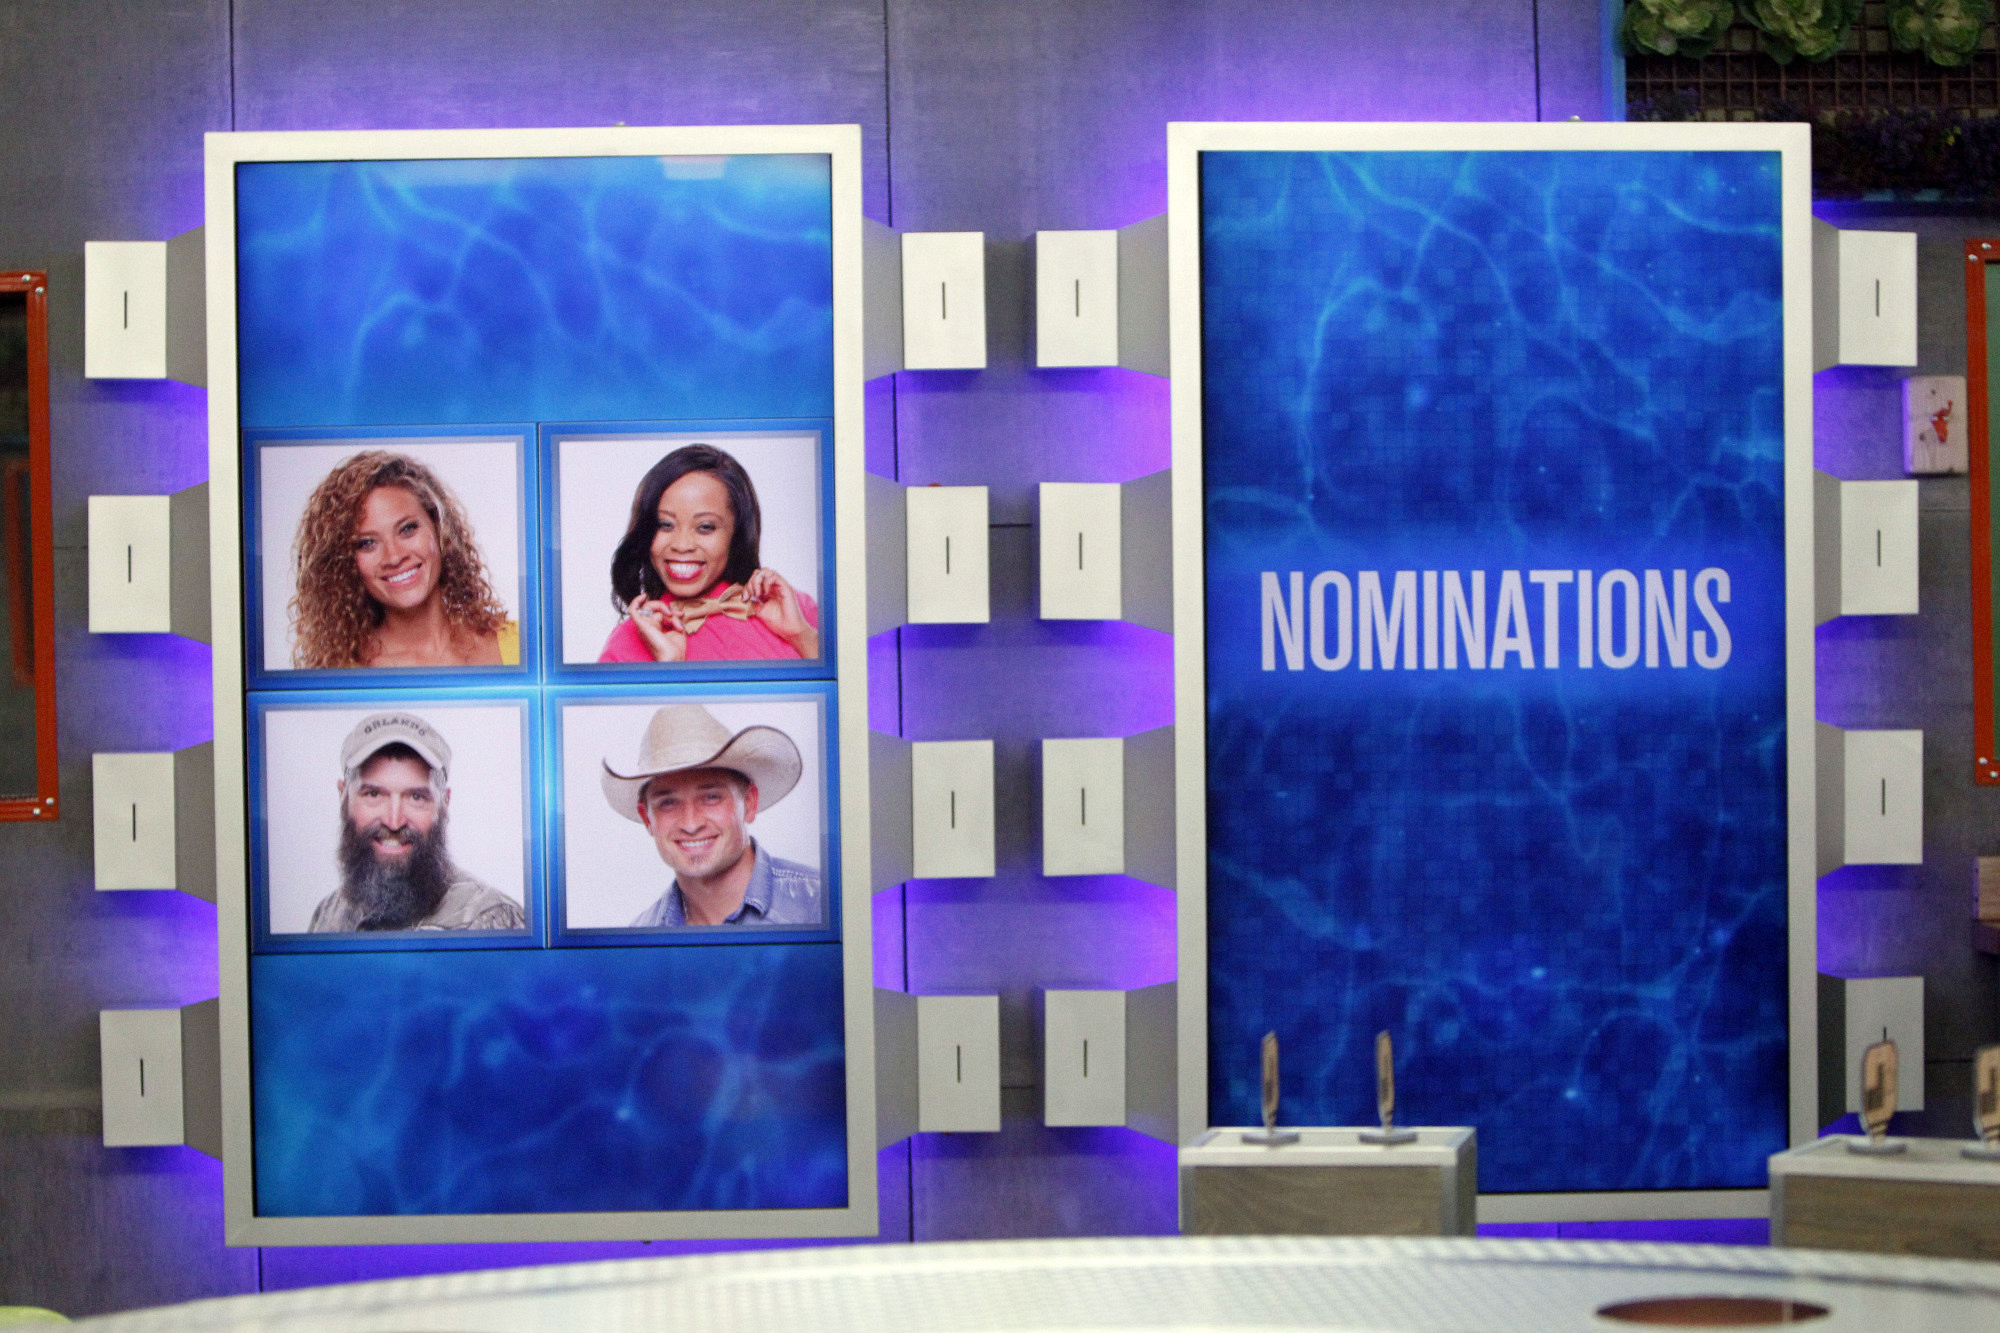 Nominations for the week